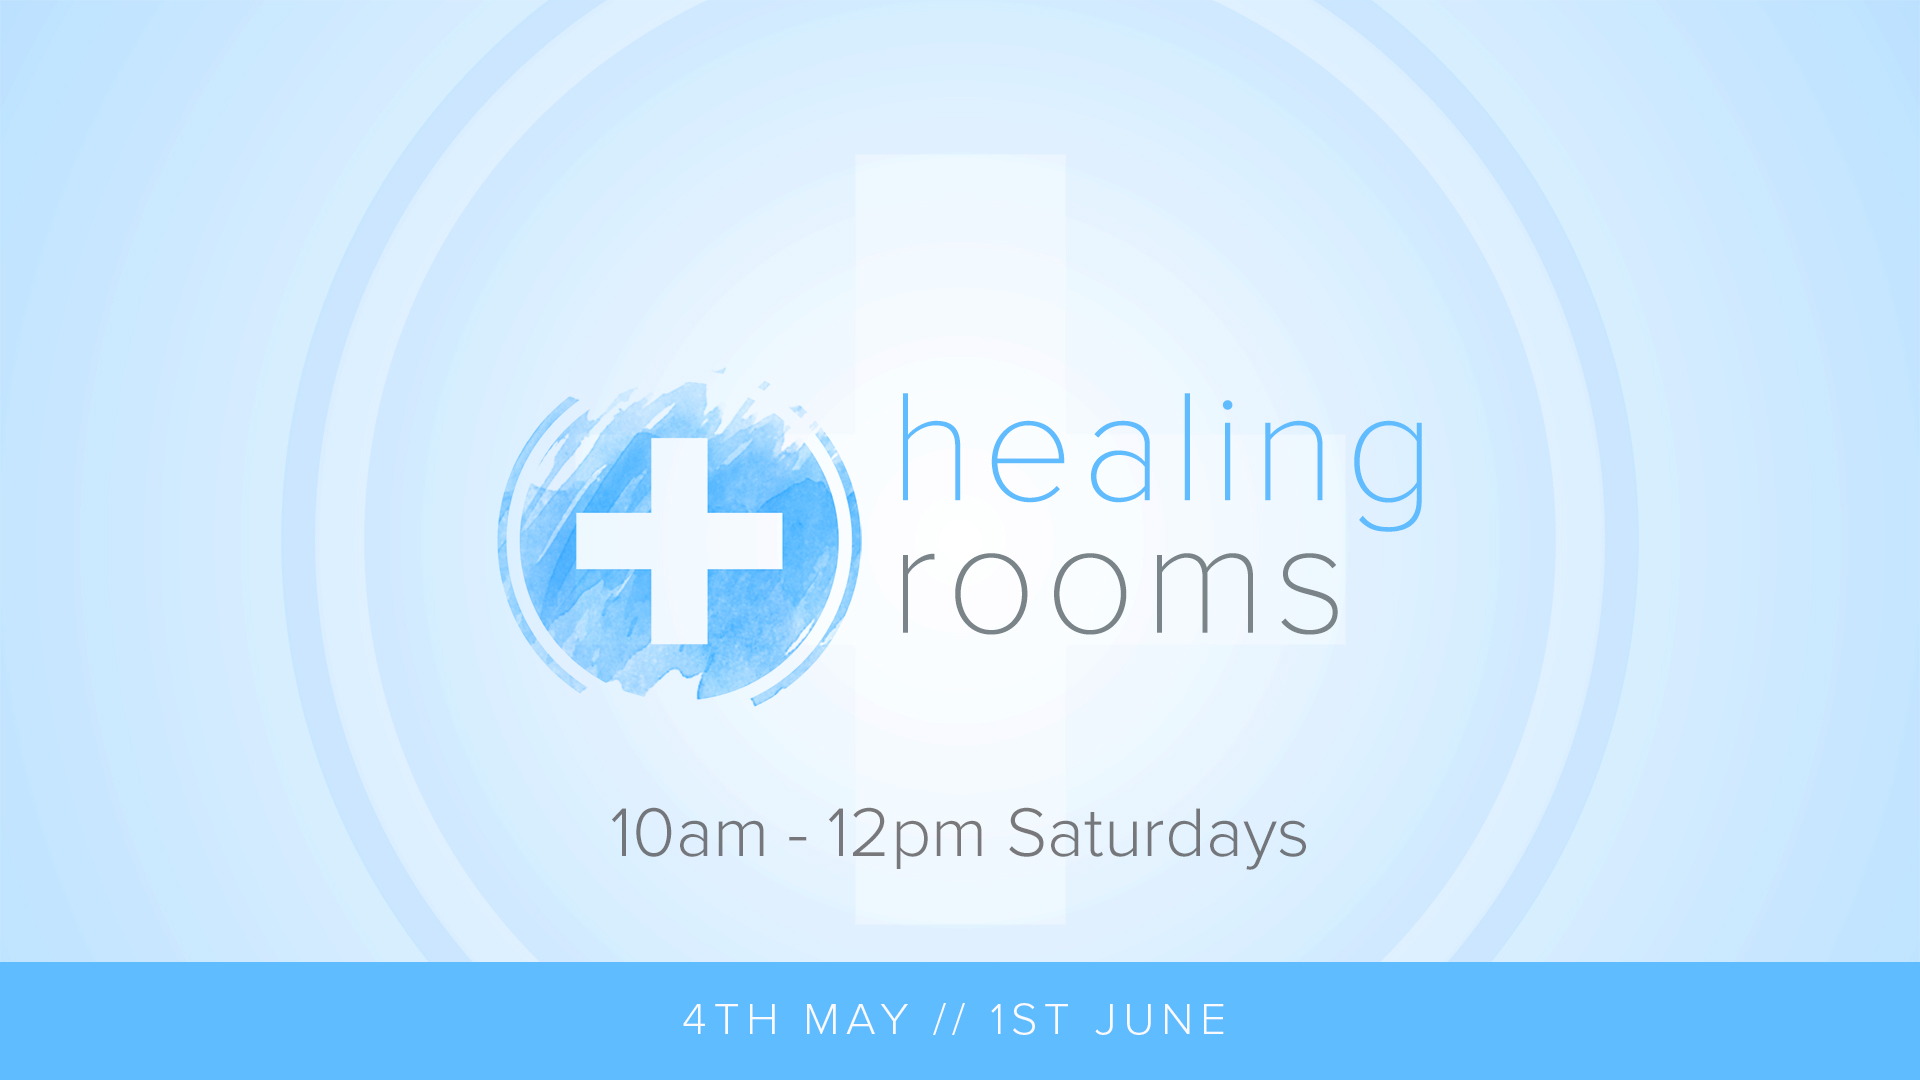 healing-rooms-1920x1080-may.JPG